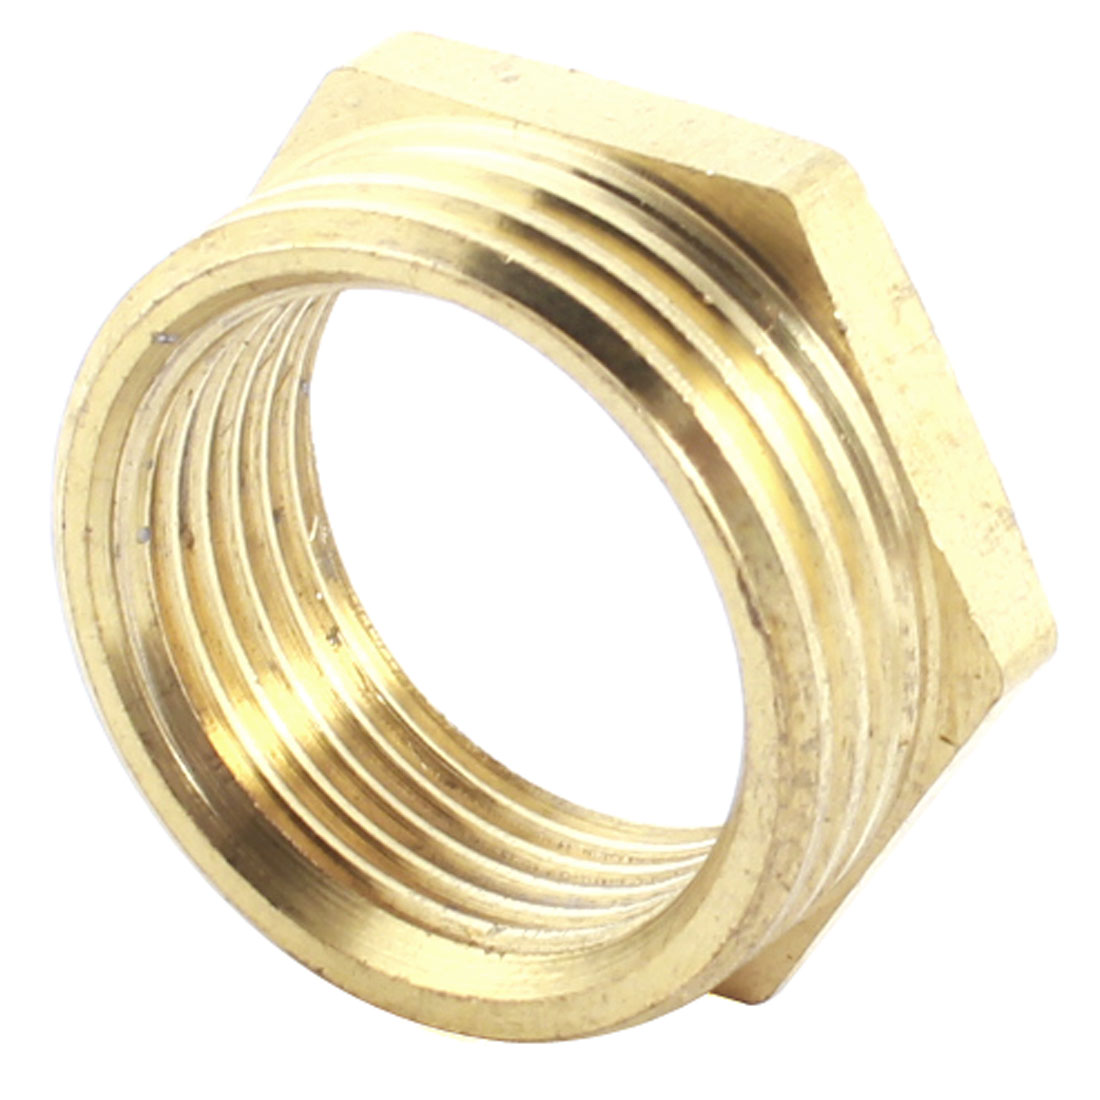 1PT x 3/4PT Male to Female Thread Air Pipe Fittings Hex Head Socket Adapter Plug Caps